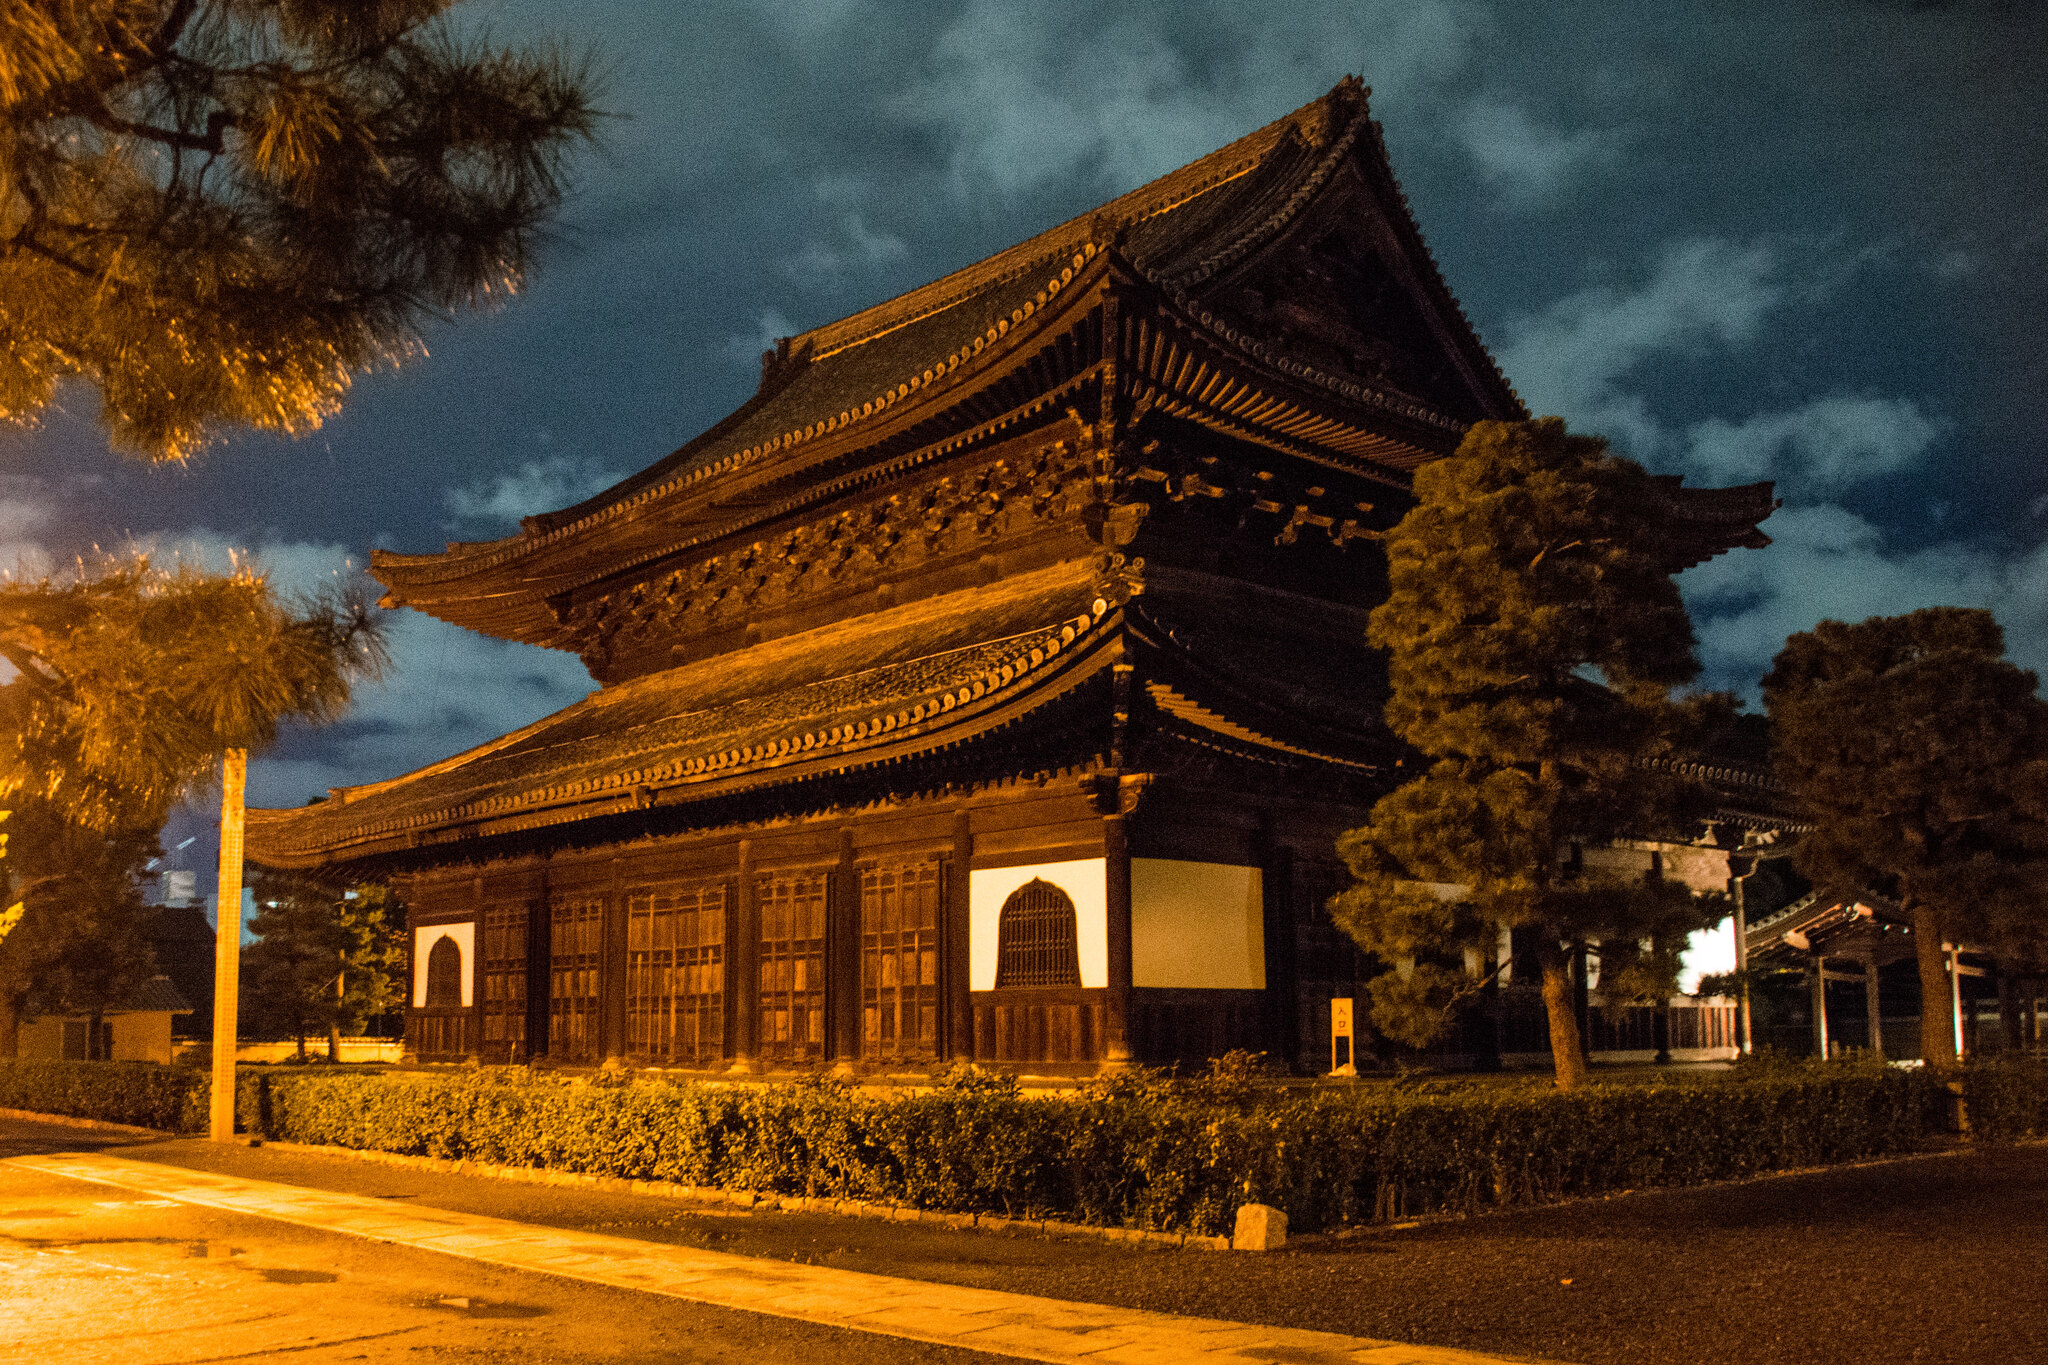 Evening light beautiful building in Kyoto